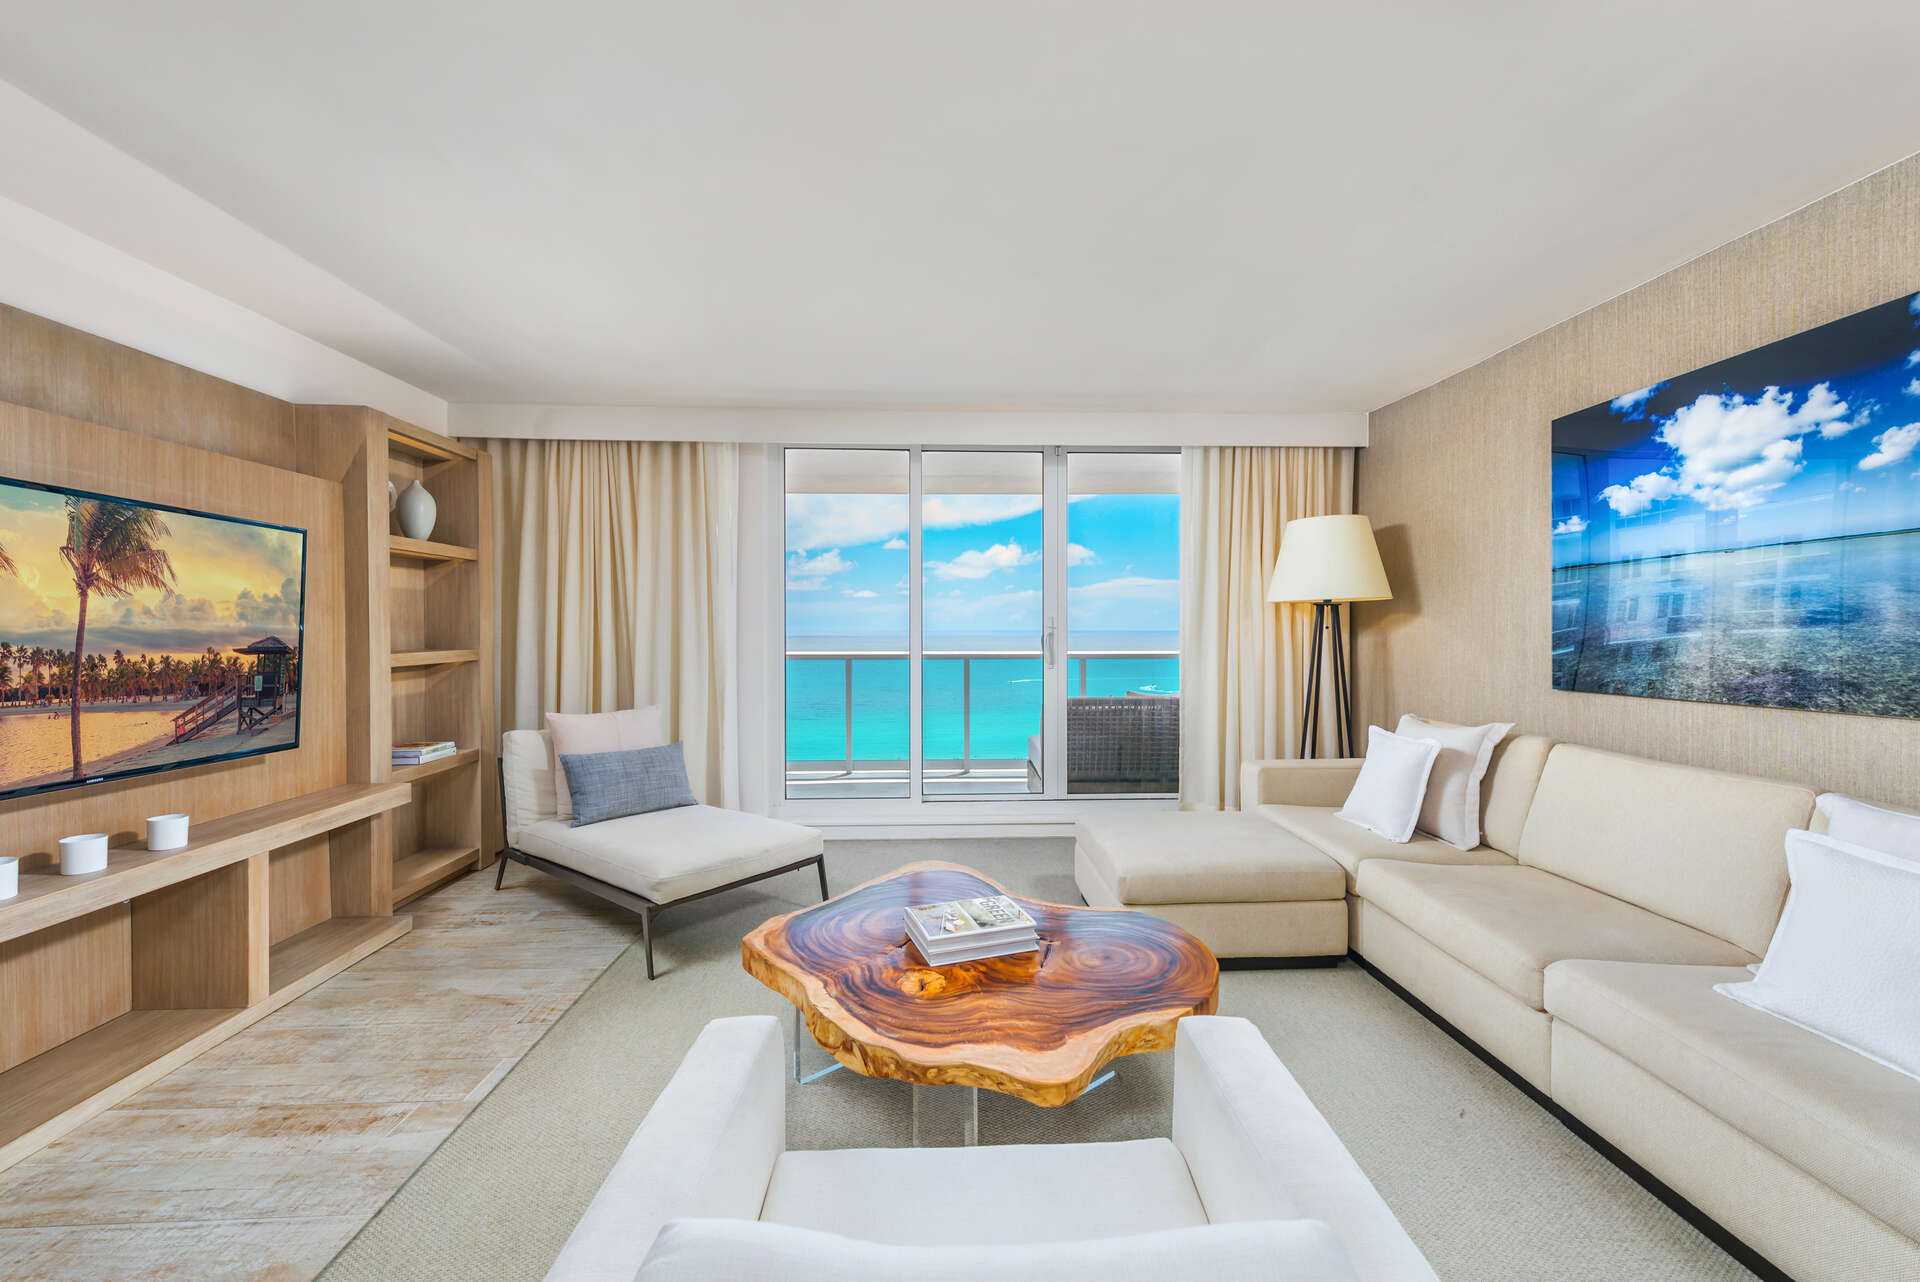 Luxury vacation rentals usa - Florida - Miami beach - Eco hotel southbeach - #1544 | 3 BDM Oceanfront - Image 1/20